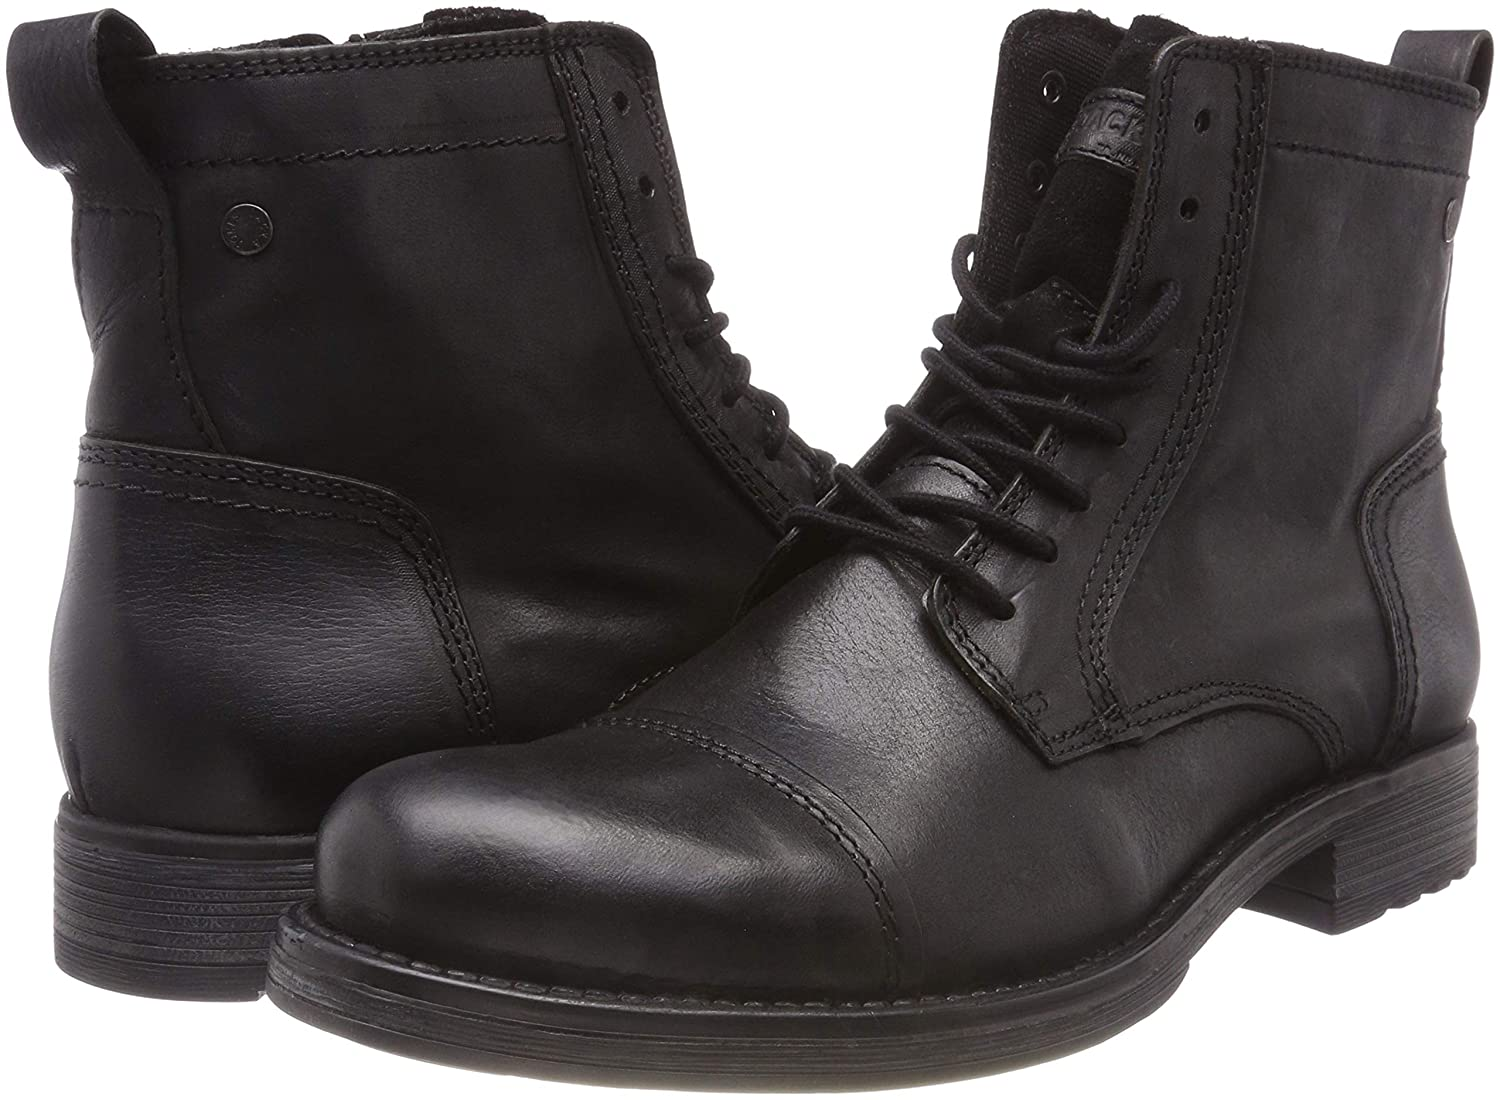 Jack & Jones Jones Jones Jfwrussel Leather Anthracite Pre, Stivali Classici Uomo be4f1d